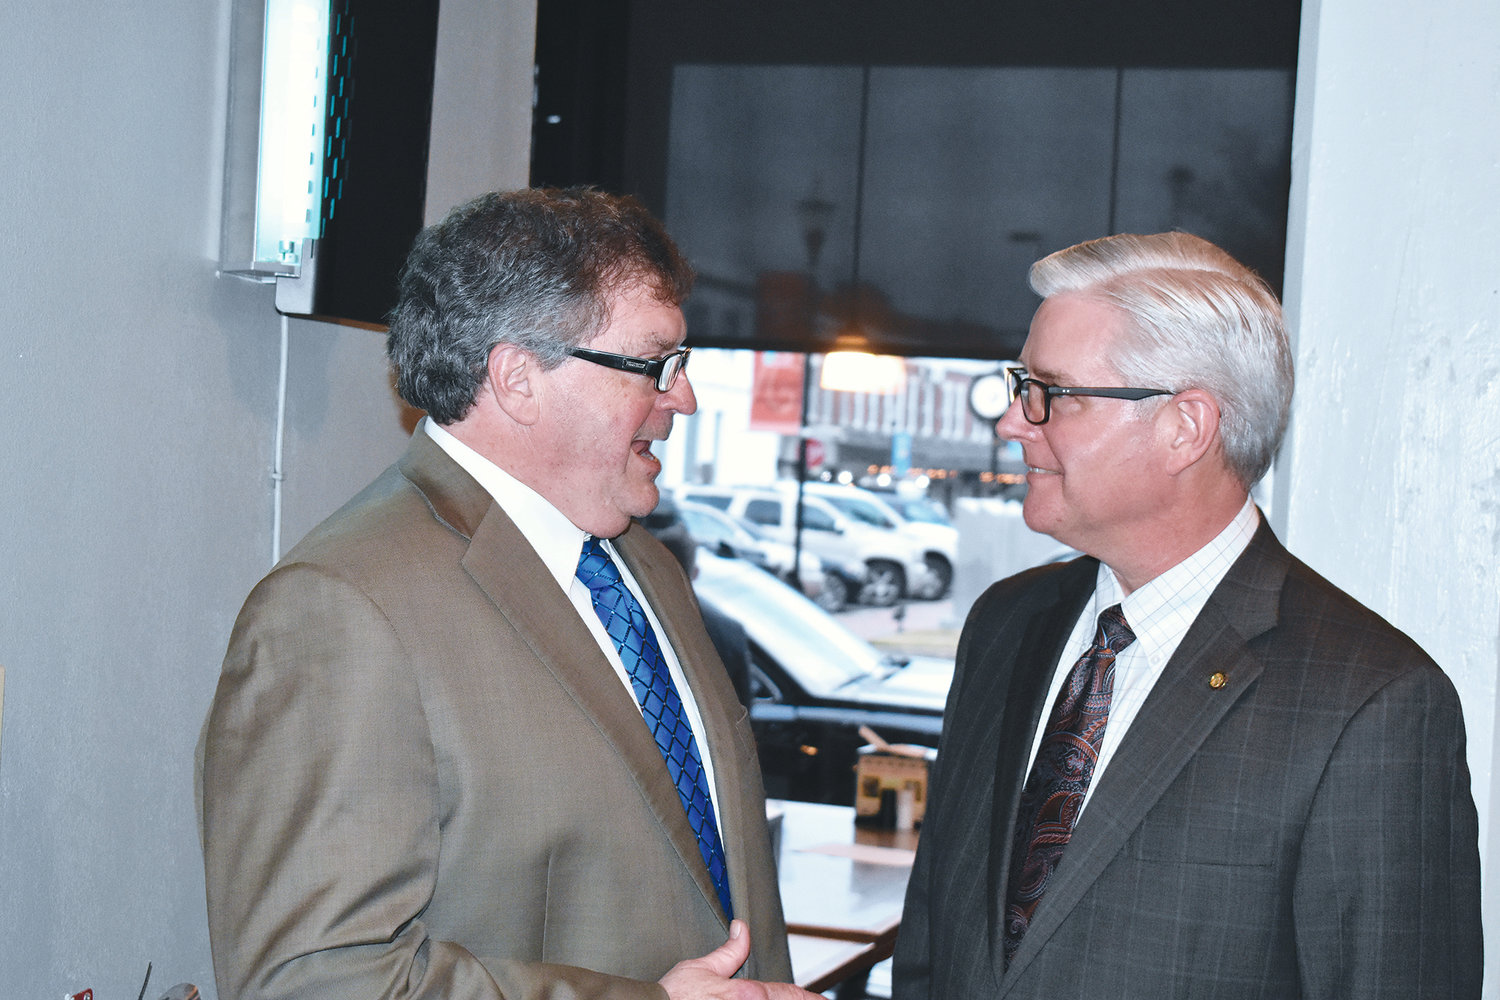 State Rep. Tim Wadsworth, R-Arley, left, and Senate Majority Leader Greg Reed, R-Jasper, share a moment at a Jasper Main Street reception on Tuesday.